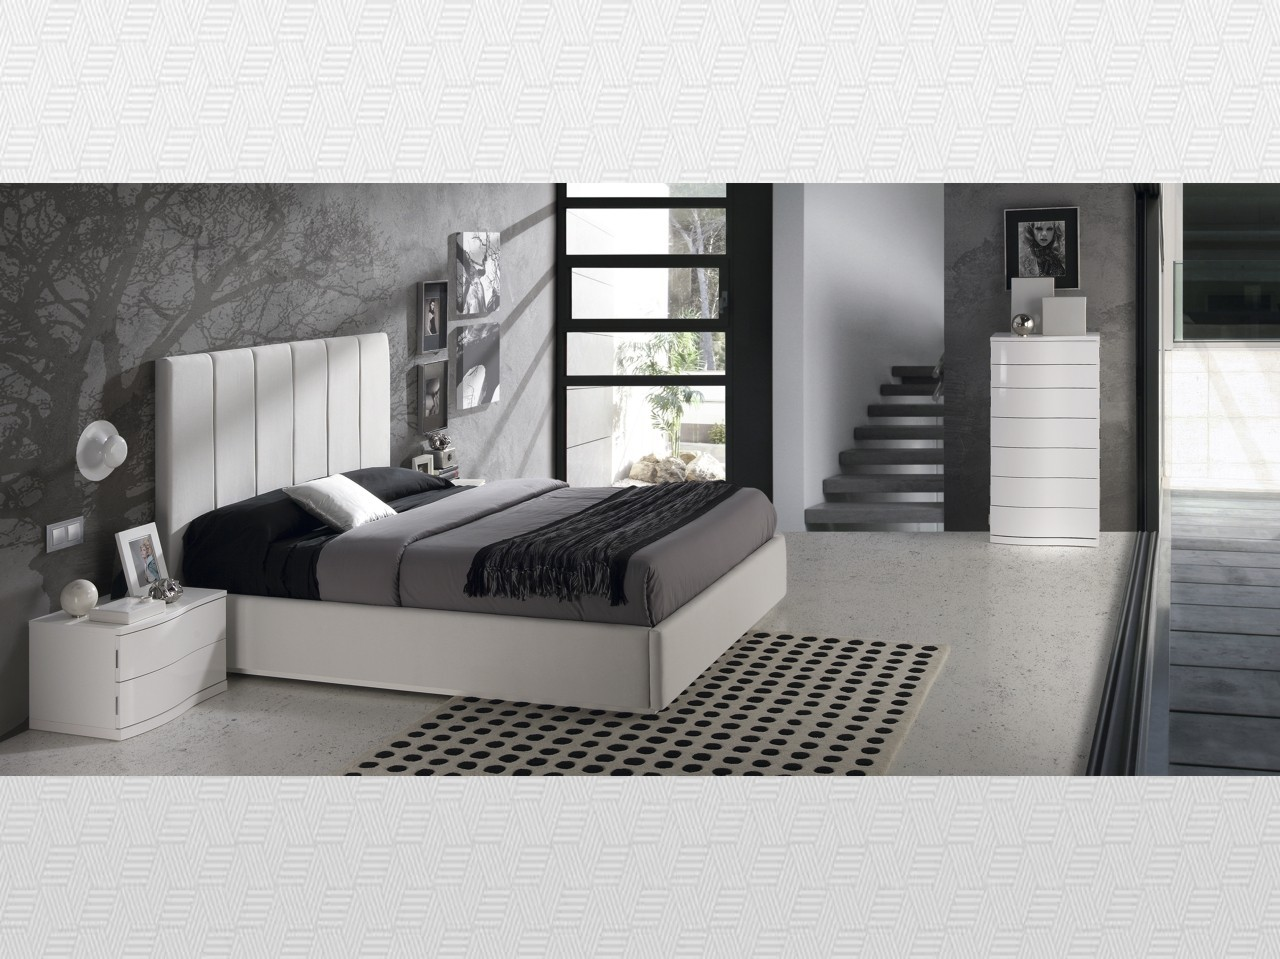 Dormitorio matrimonio blanco blanco lacado tapizado for Muebles de matrimonio